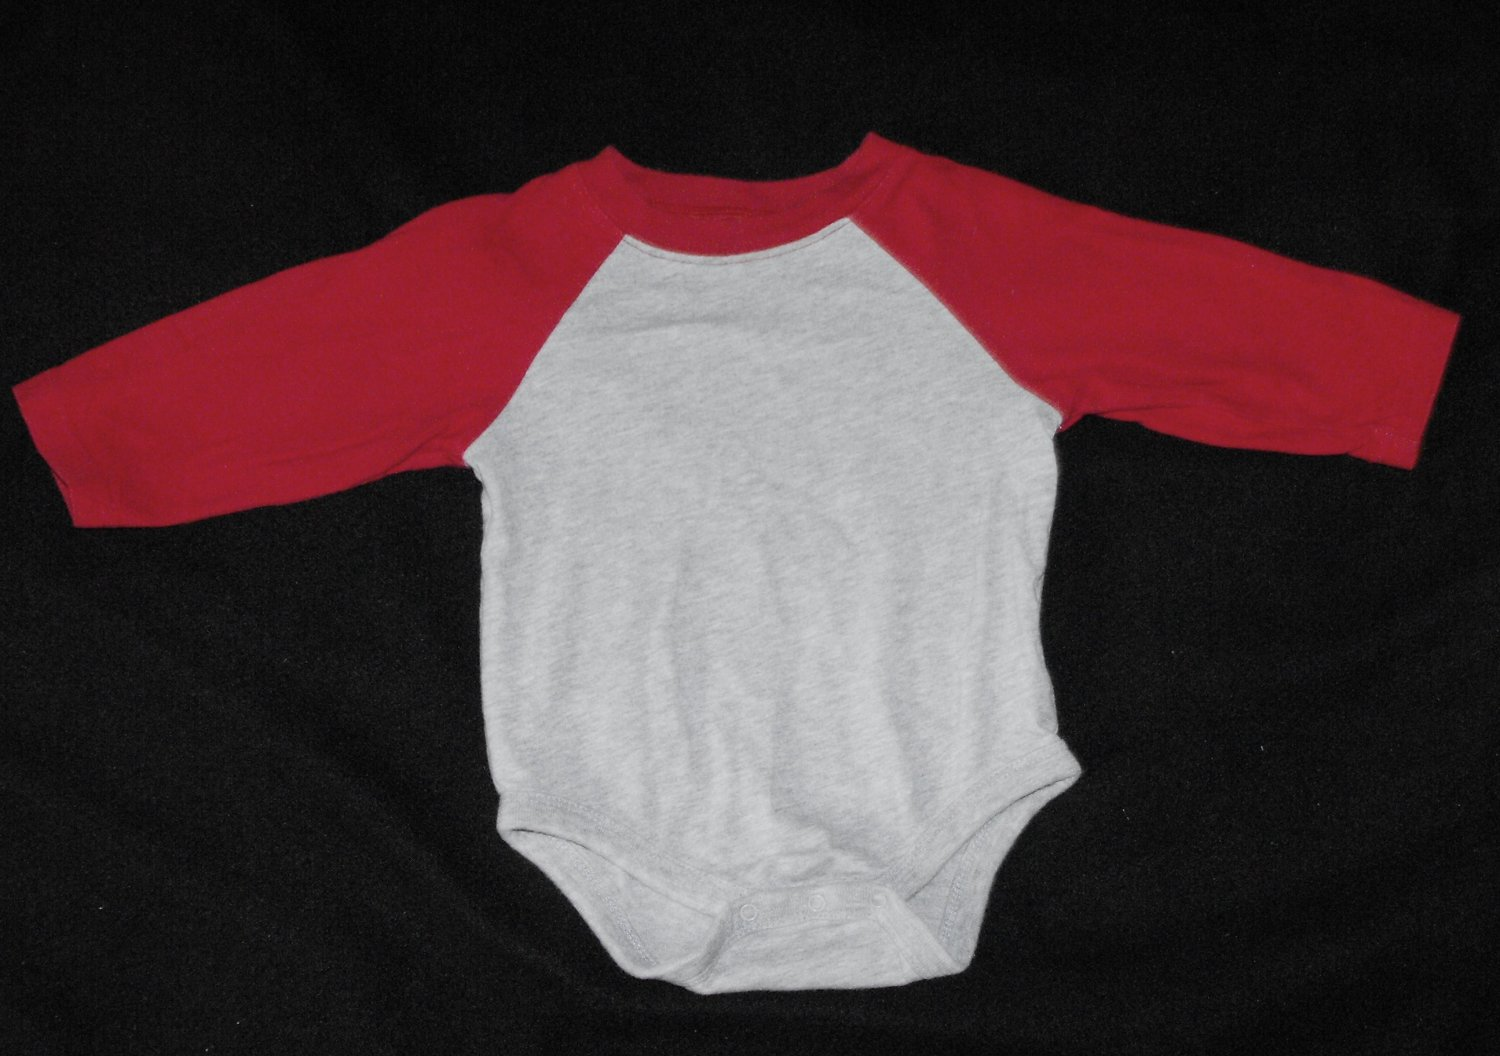 12*SOLD~Faded Glory Boys 12 Months Long Sleeve Onesie Jersey Style Shirt